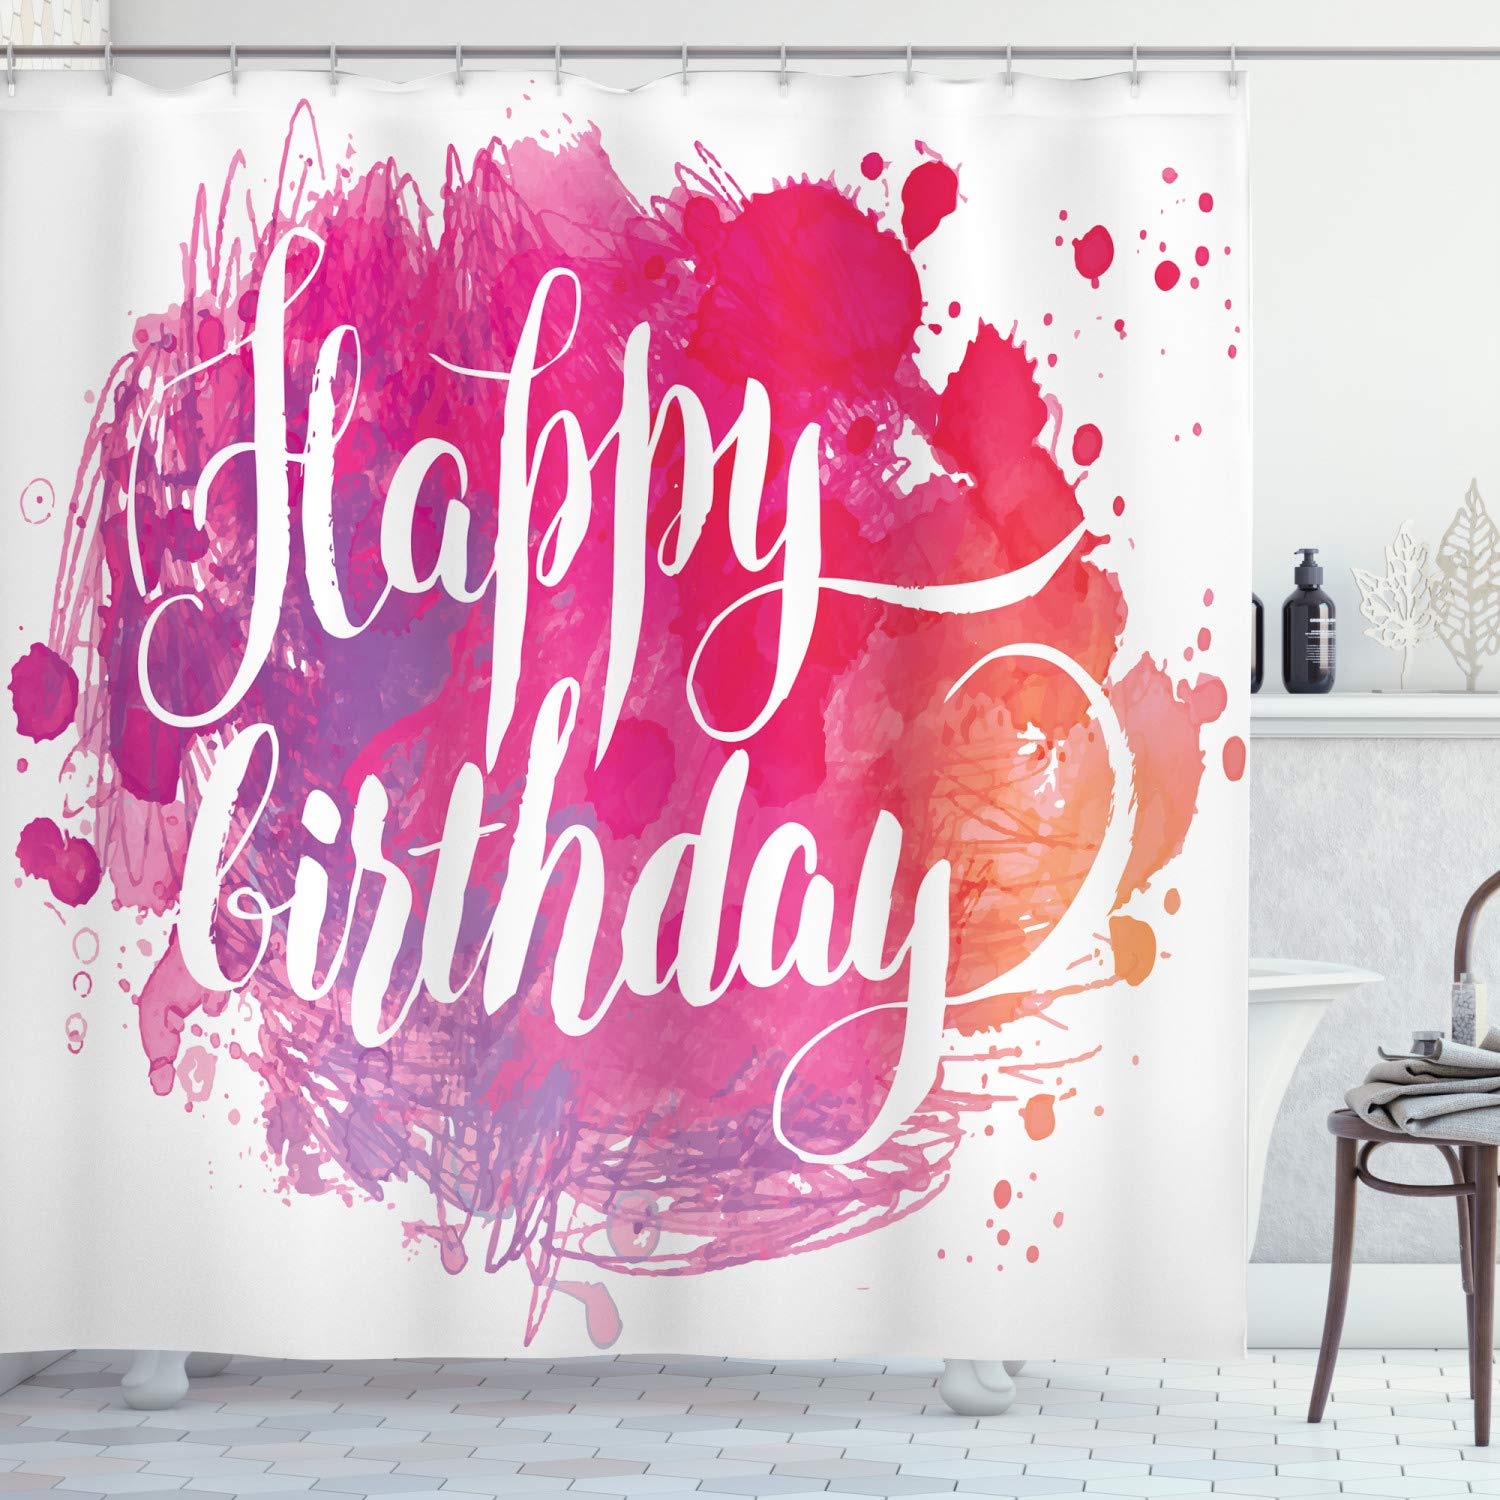 """Ambesonne Birthday Shower Curtain, Abstract Watercolored Splatters Hand Paint Style Celebratory Text, Cloth Fabric Bathroom Decor Set with Hooks, 70"""" Long, Orange Pink"""